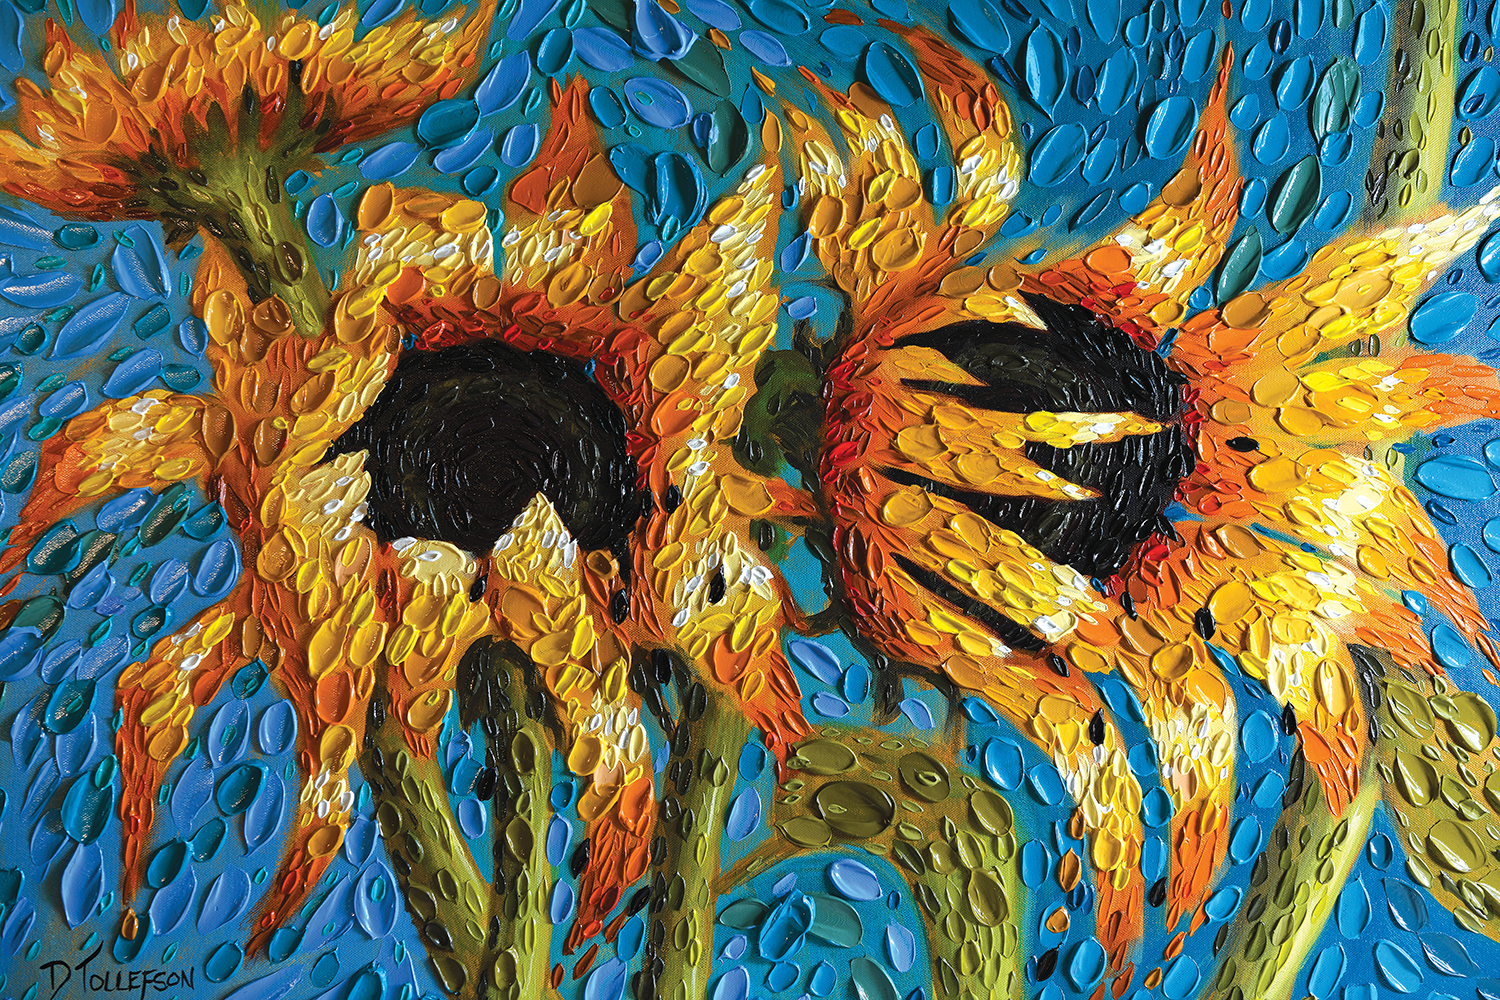 Three large sunflowers on blue background with texture